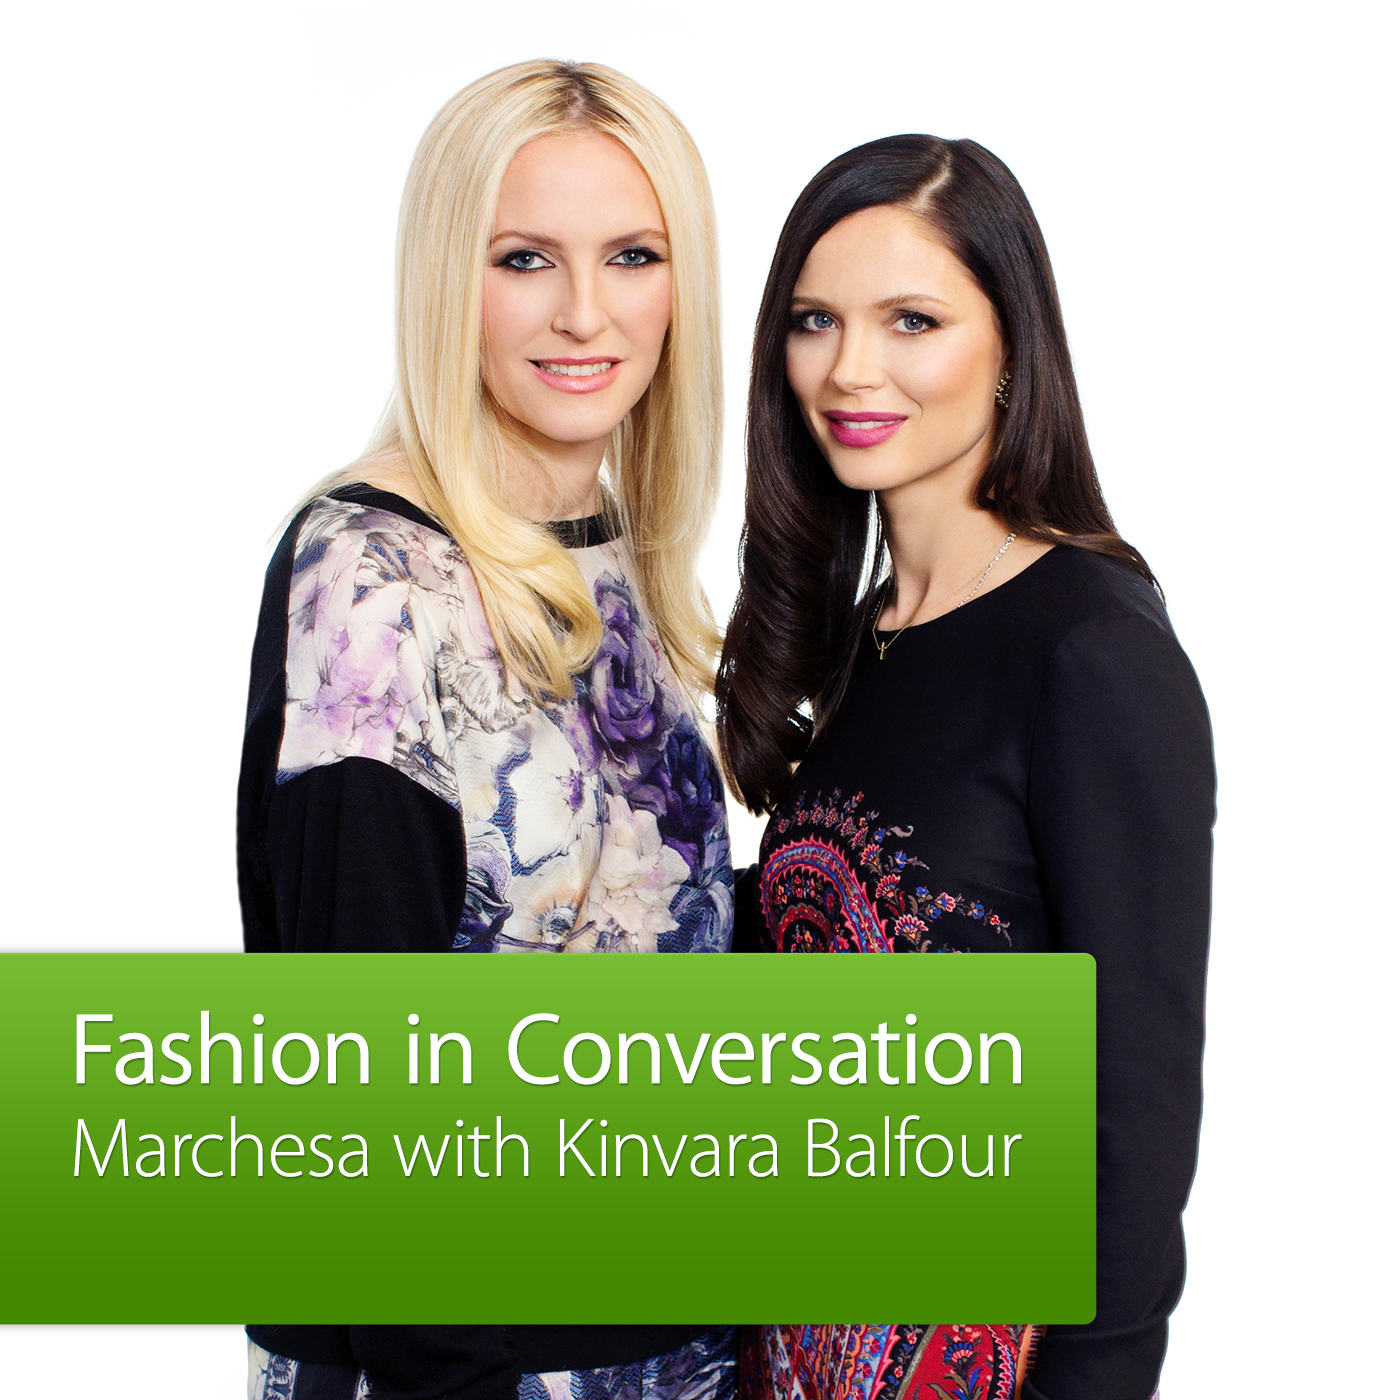 Marchesa with Kinvara Balfour: Fashion in Conversation